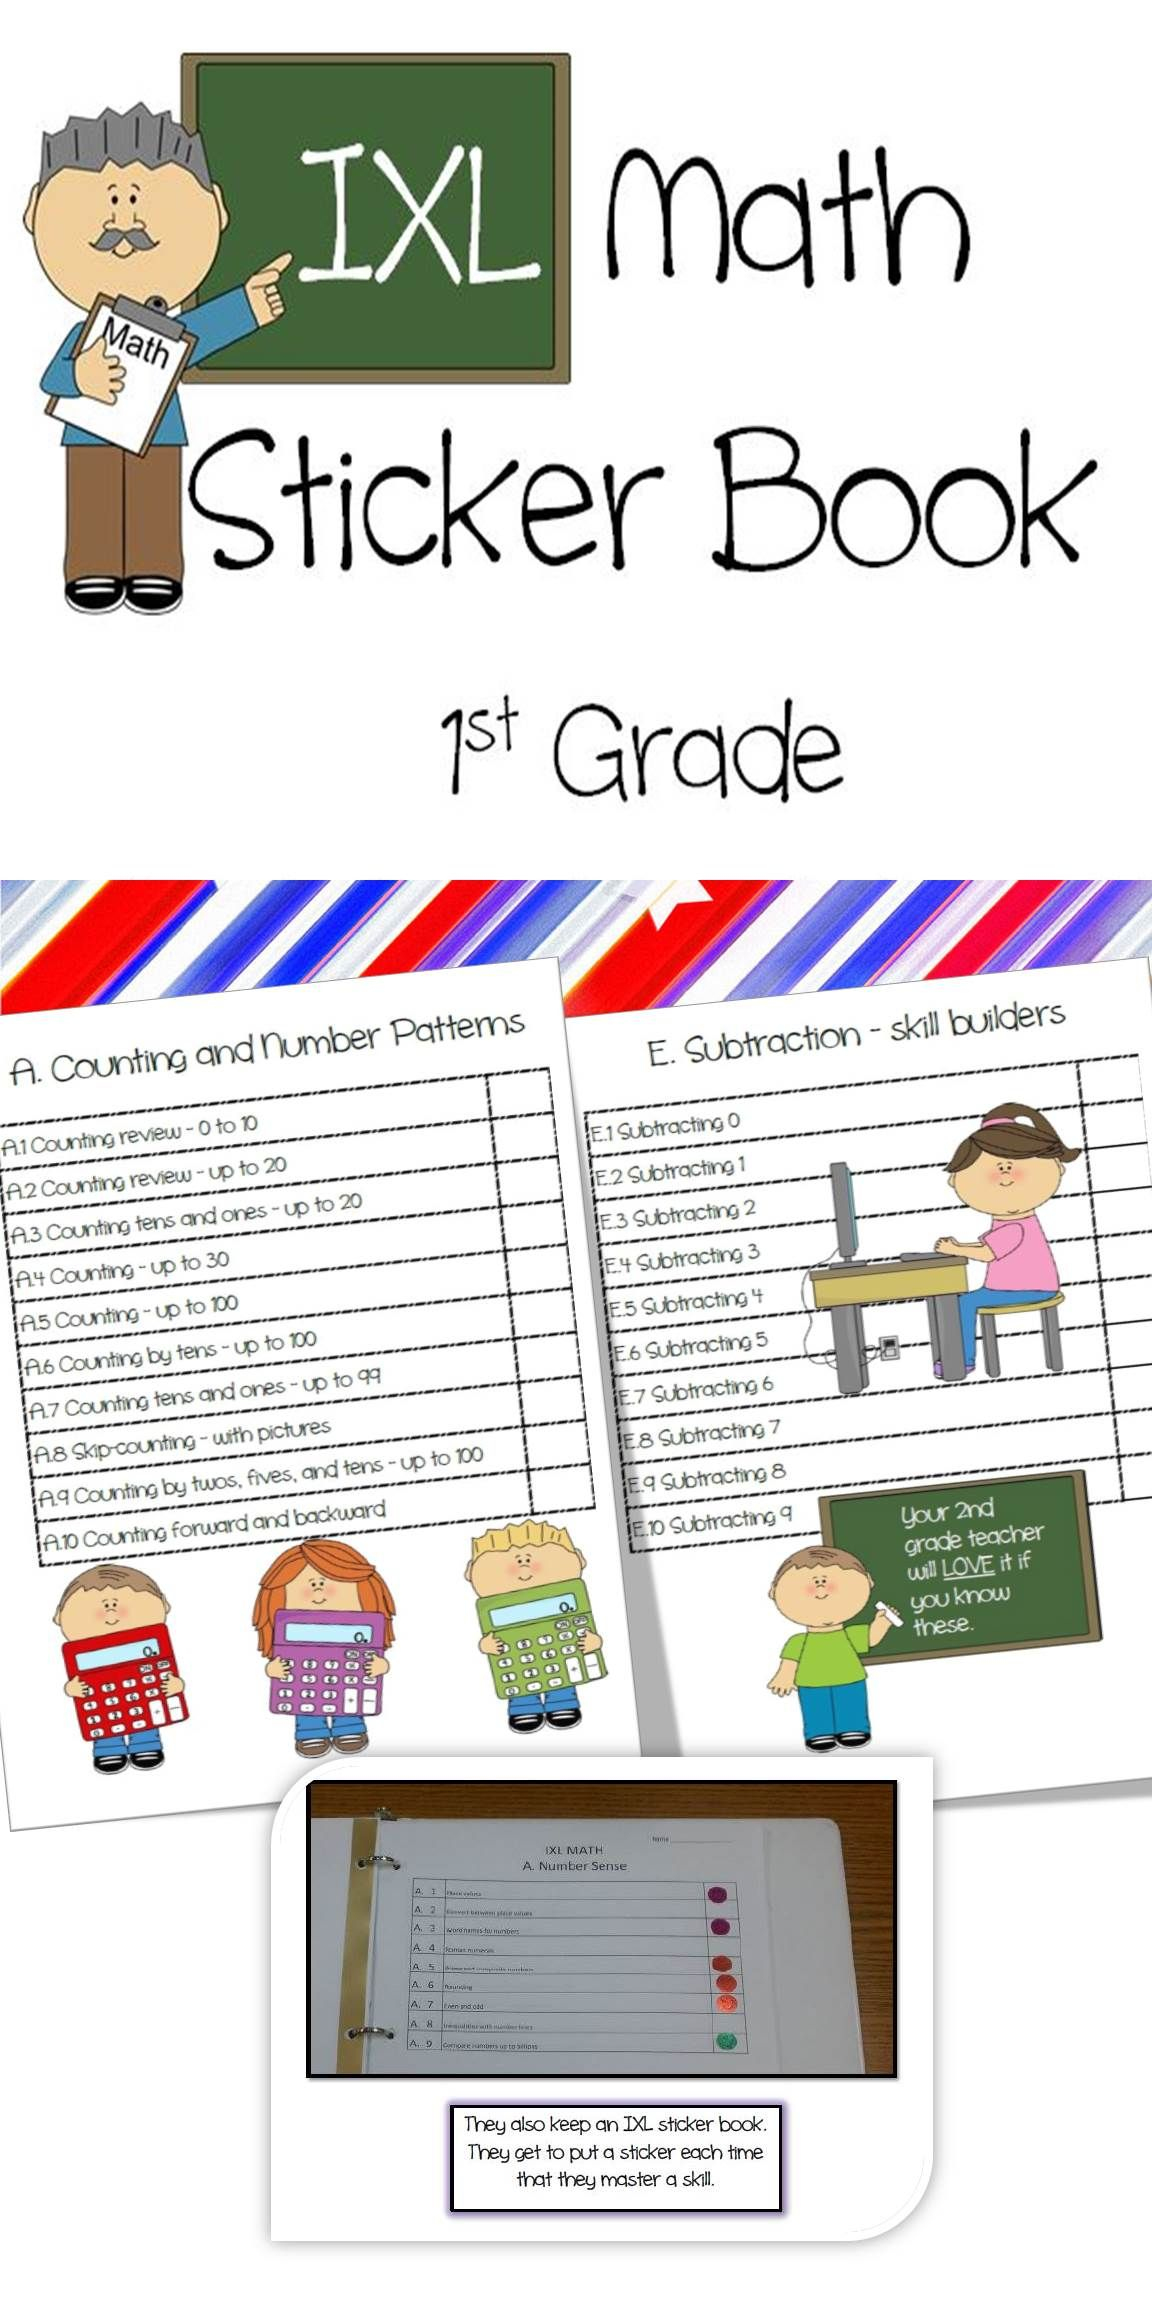 Do your students use IXL? My kids love IXL. I created a